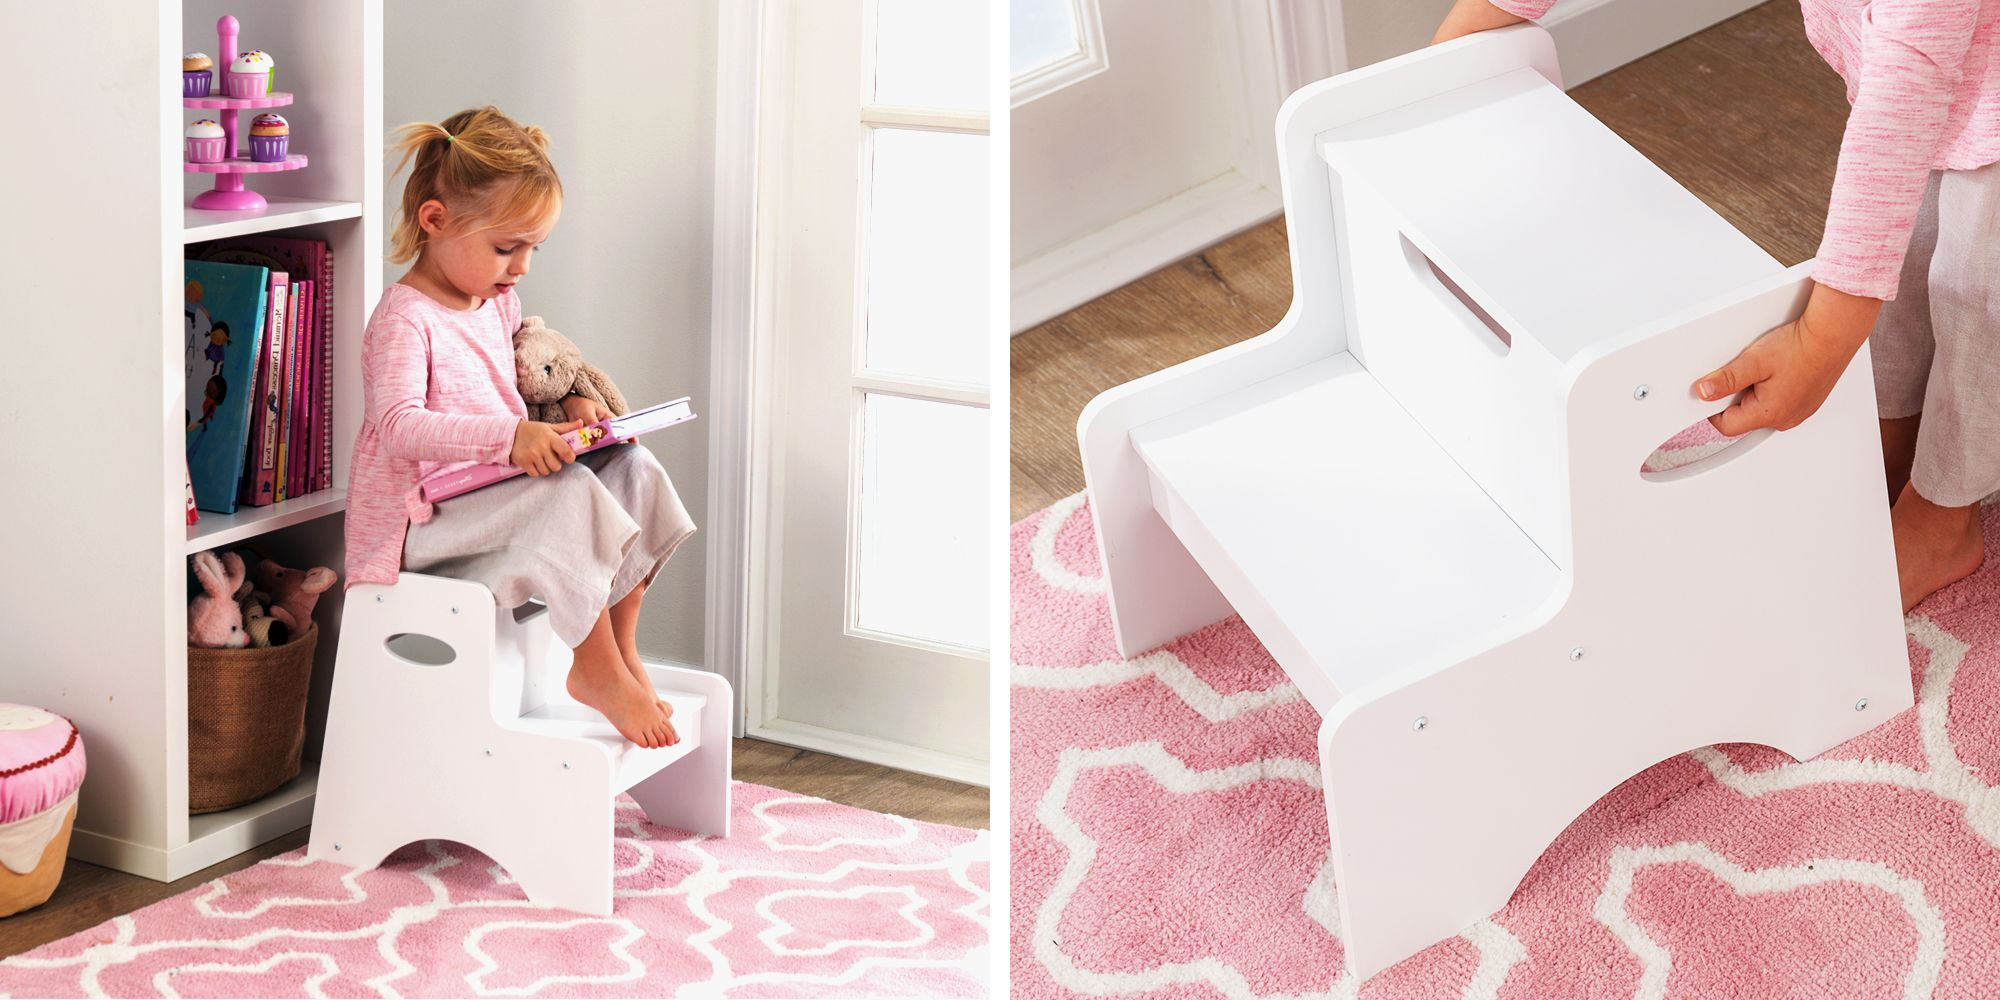 11 Best Kids Step Stools In 2018   Safe Step Stools For Kids And Toddlers